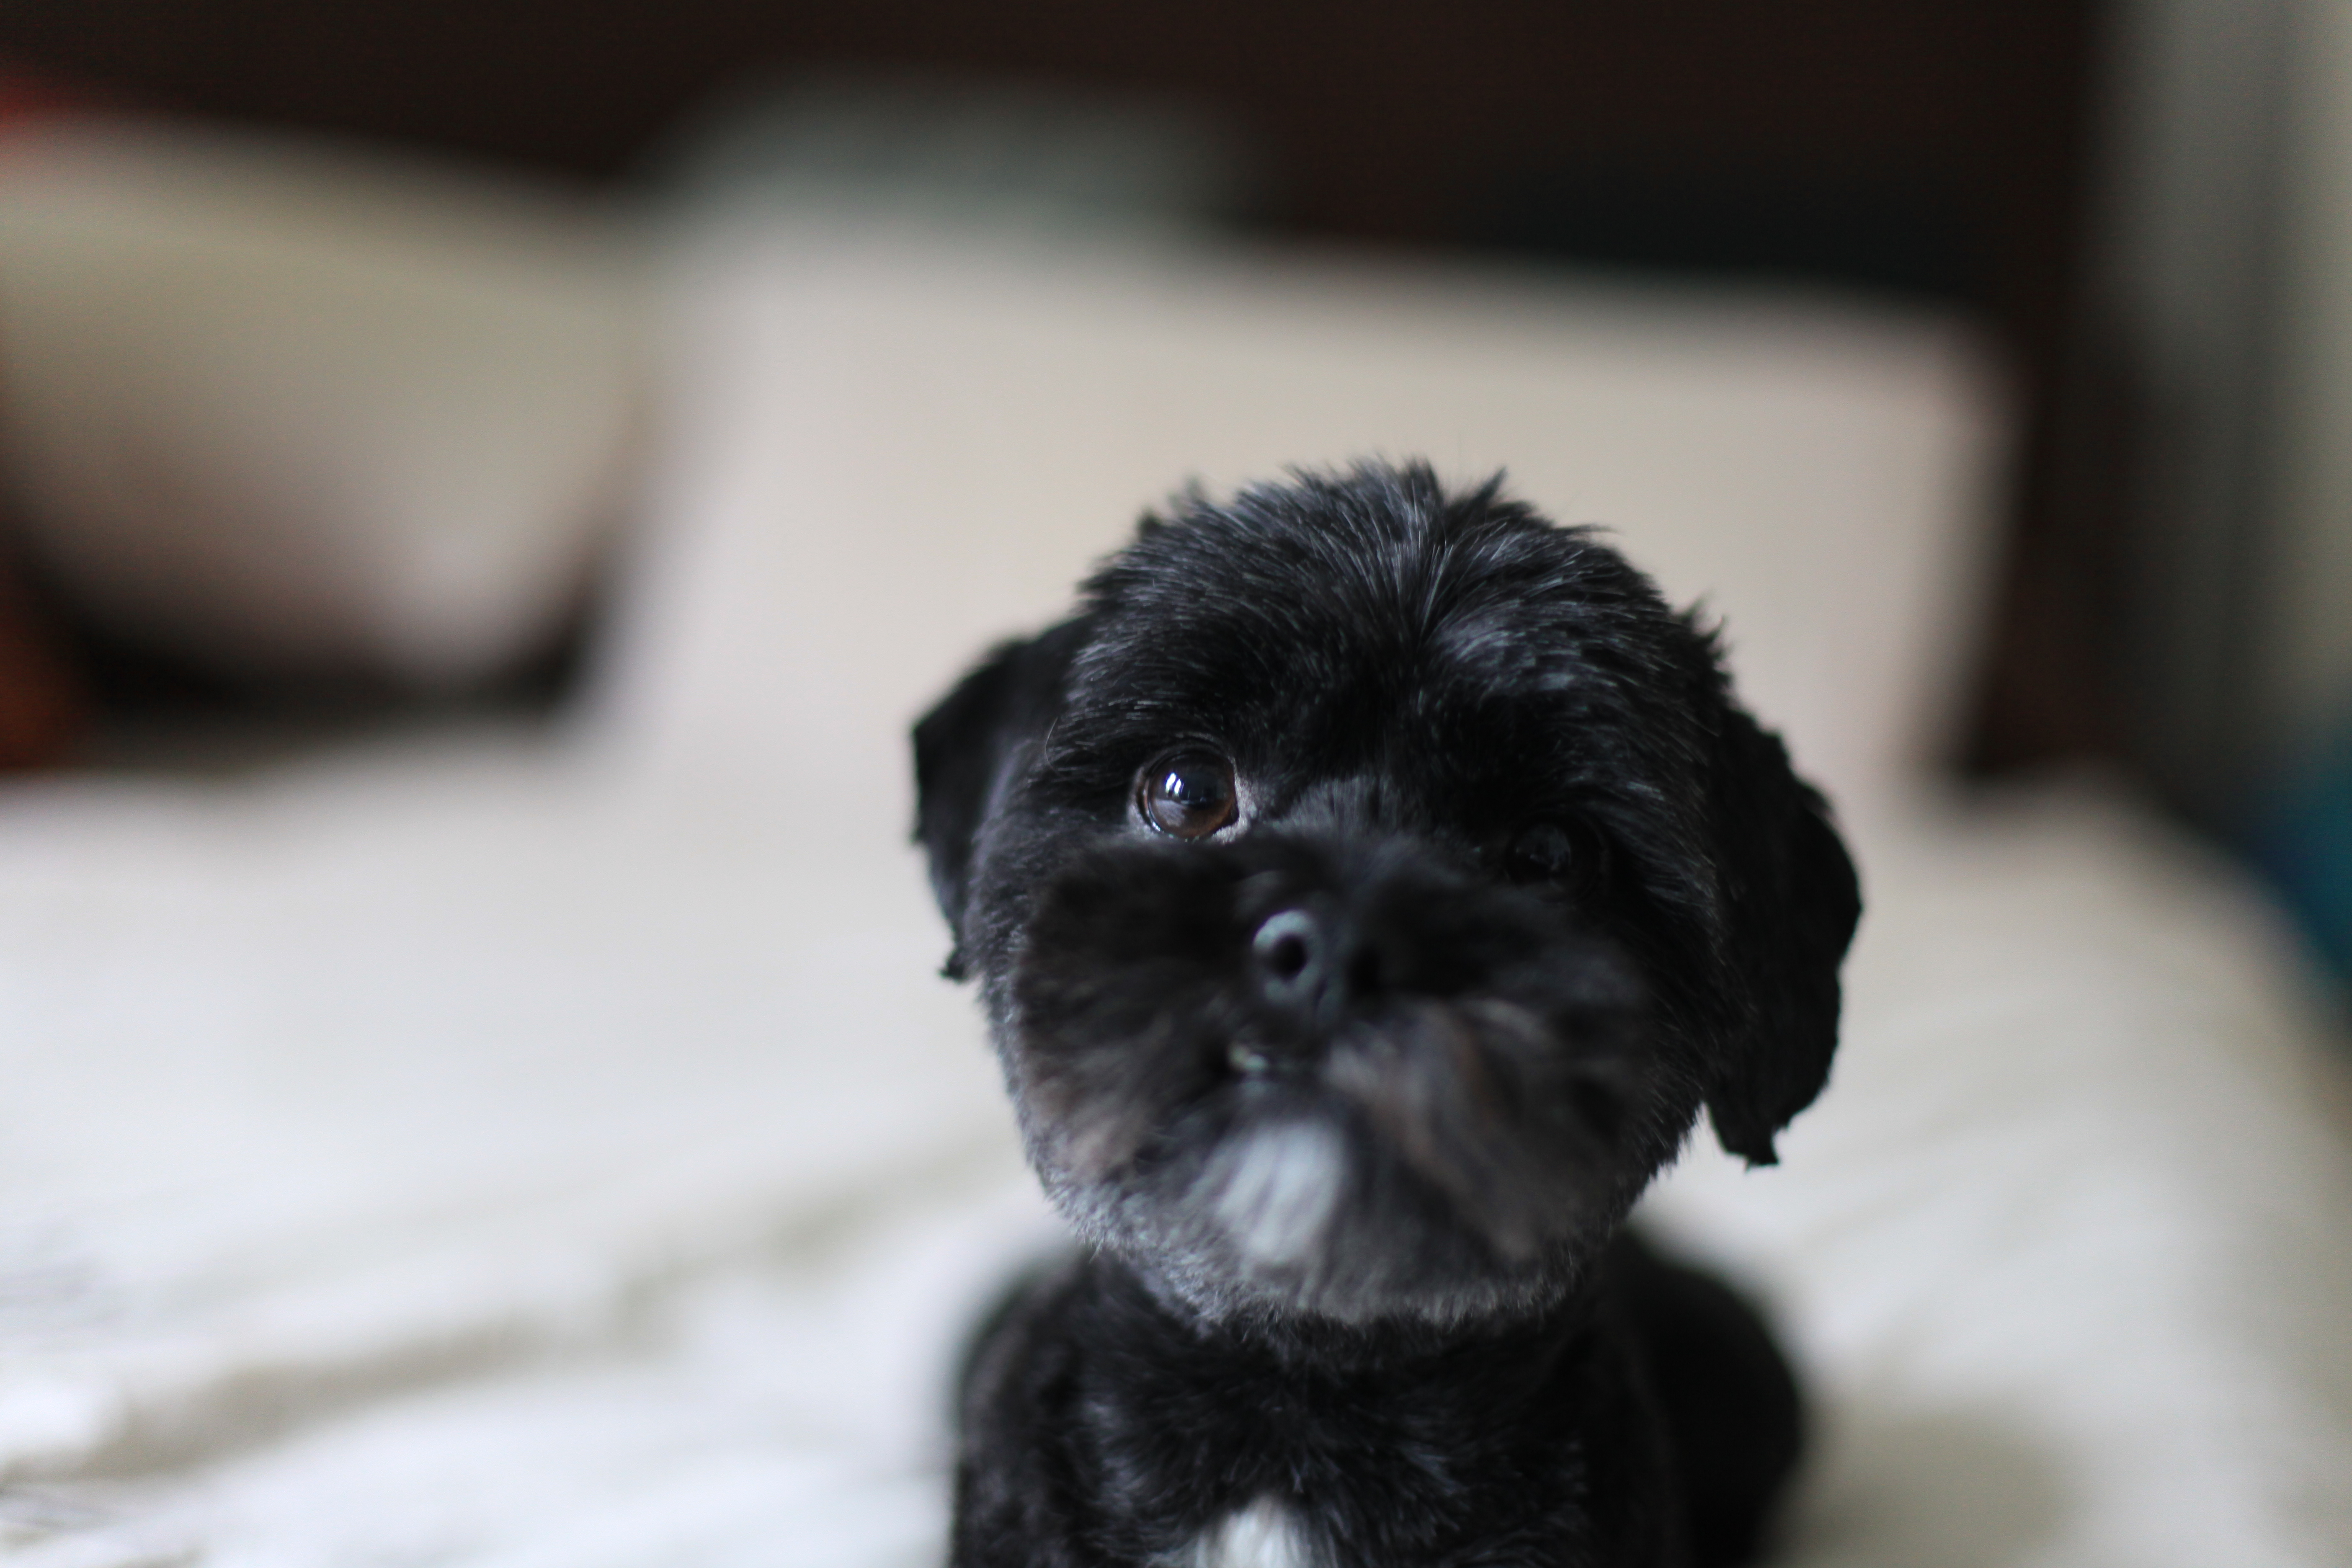 Cool We Passed A Gorgeous Black Dog That Looked Like A Big Version Of My Beaglesized Sadly Deceased Terracockapoowethink  Many Breeds Available From Wwwcarpetscouk Just &163895 Each House Is Not A Home Without A Shih Tzu The